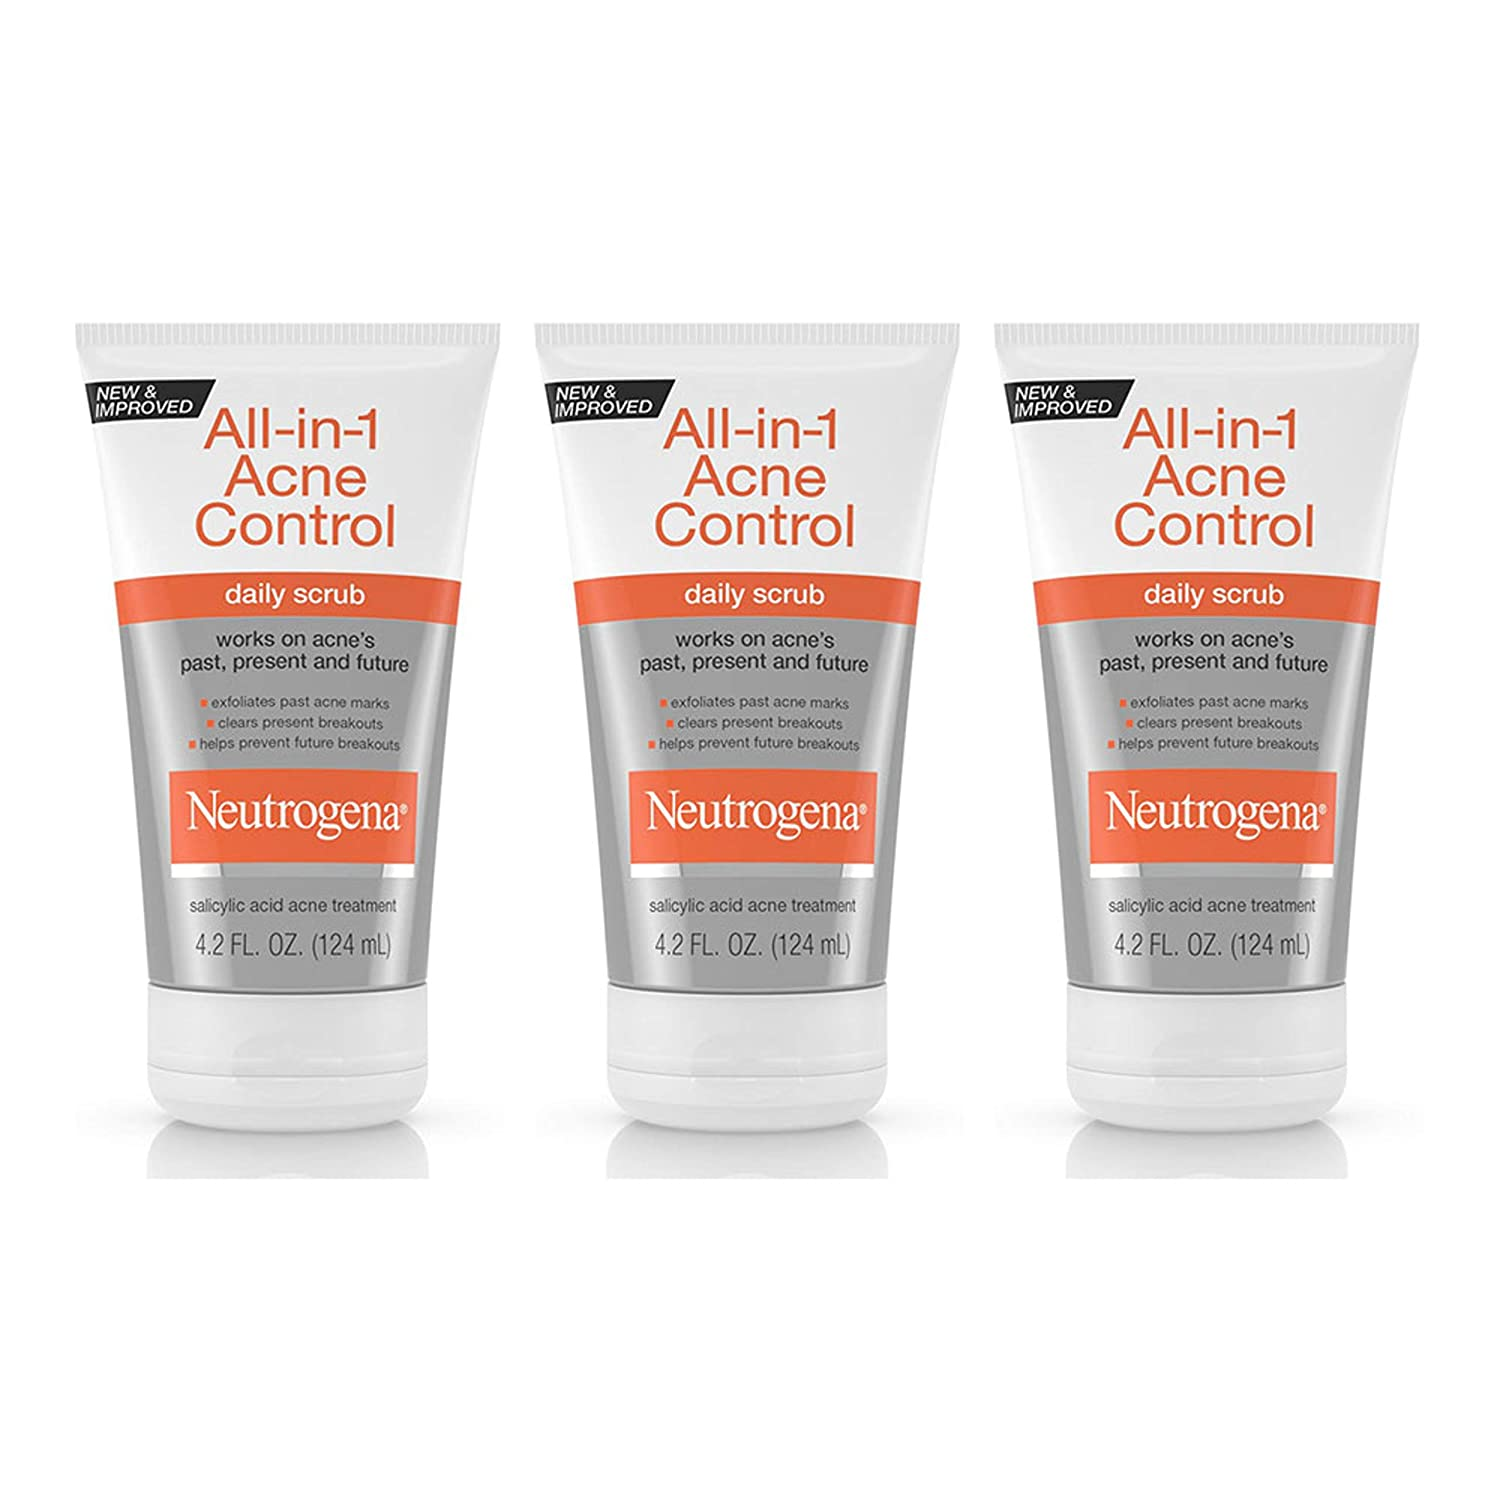 Neutrogena All-In-1 Acne Control Daily Face Scrub to Exfoliate and Treat Acne, Salicylic Acid Acne Treatment, 4.2 fl. oz (Pack of 3)